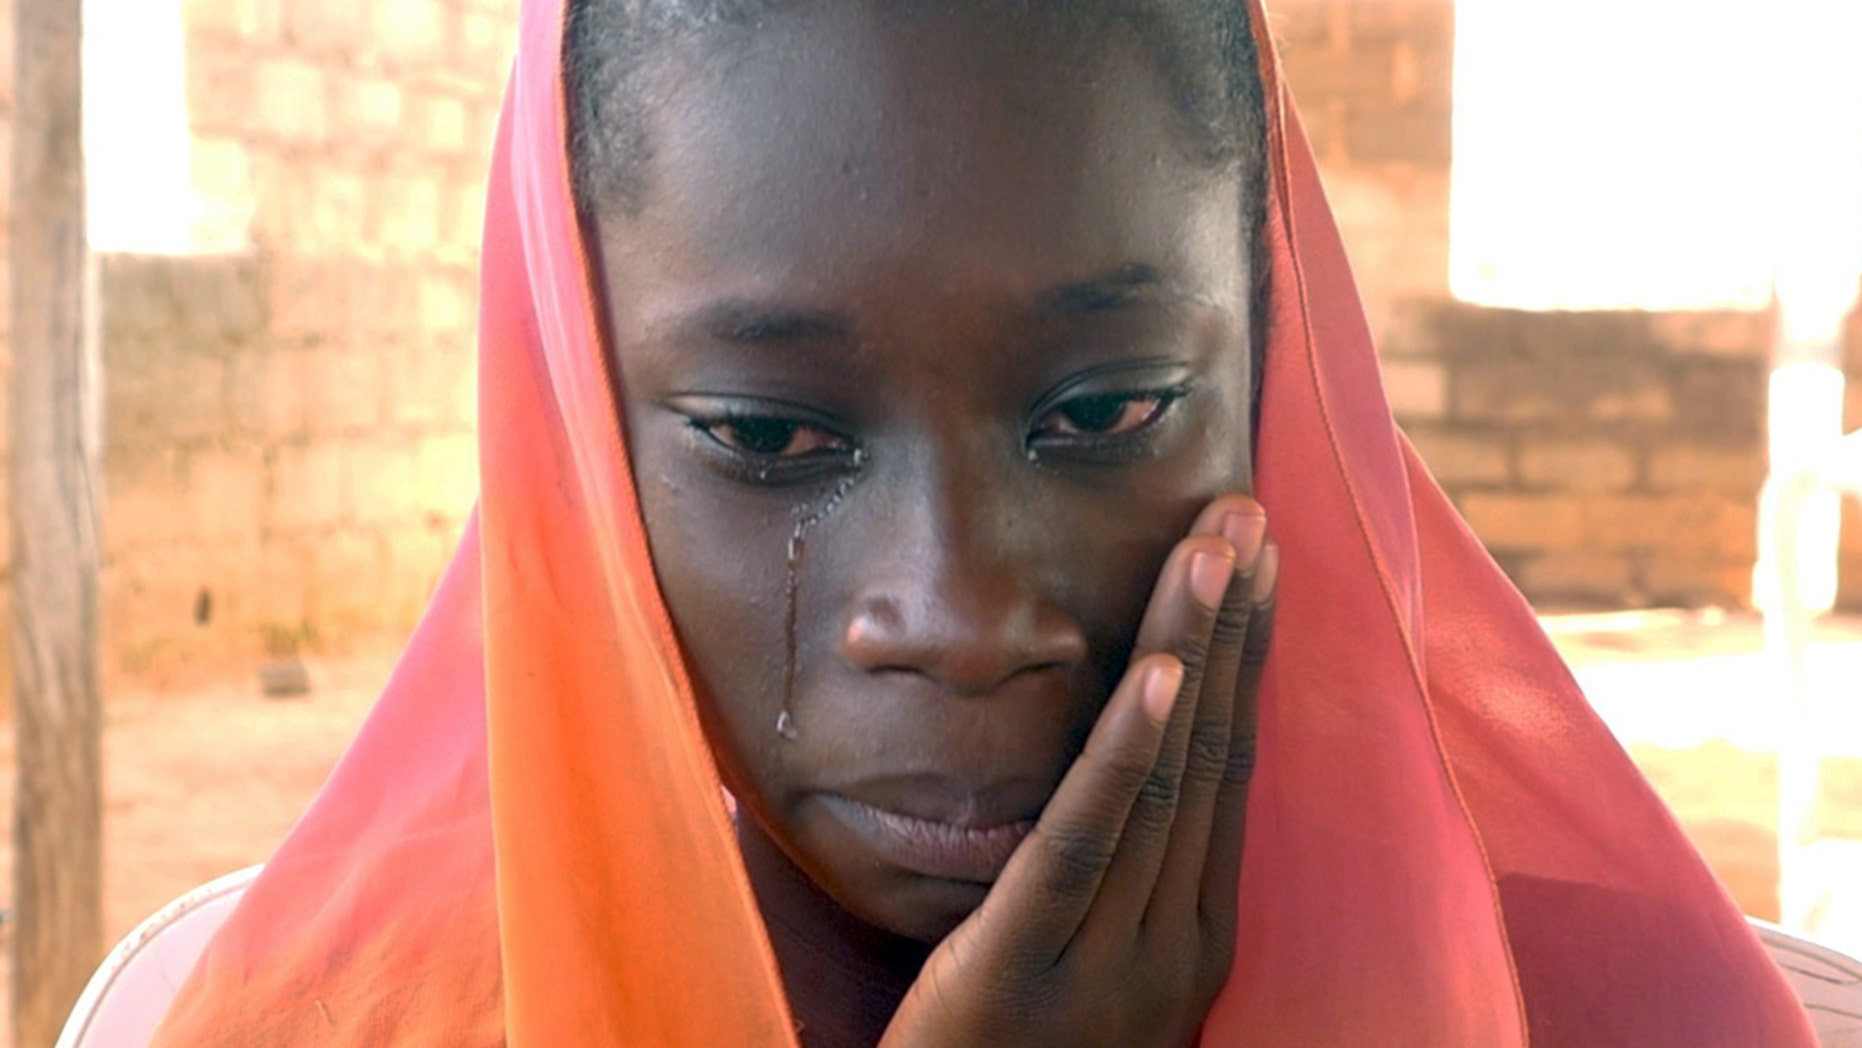 Juliet, 15, was orphaned by Fulani militants in Nigeria for her Christian faith.